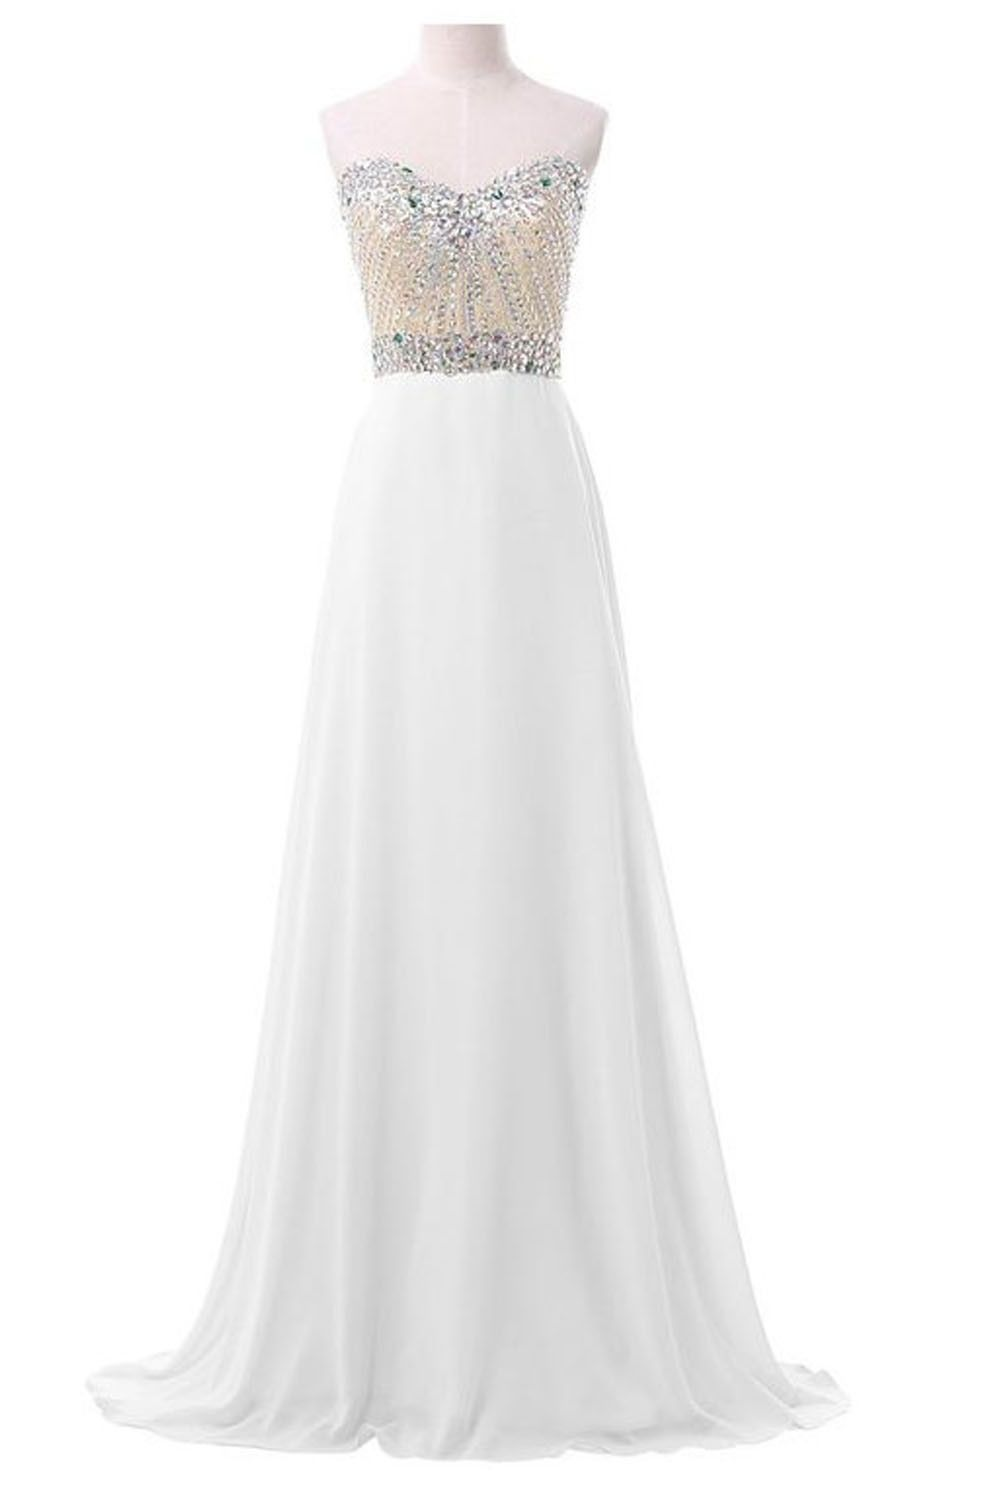 White chiffon sweetheart beaded long prom evening dresses sweet